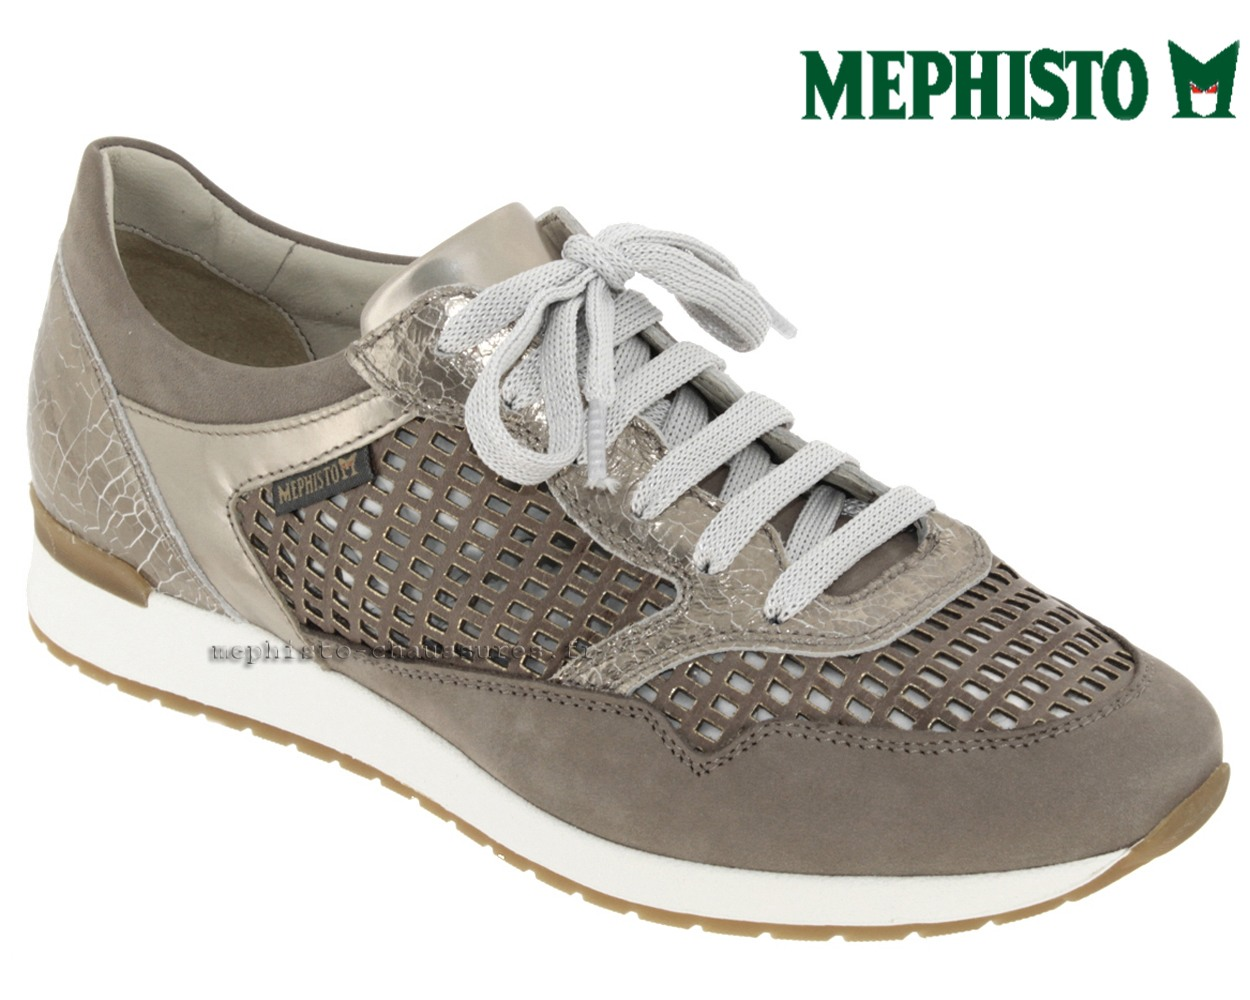 Chaussures Mephisto bleues femme